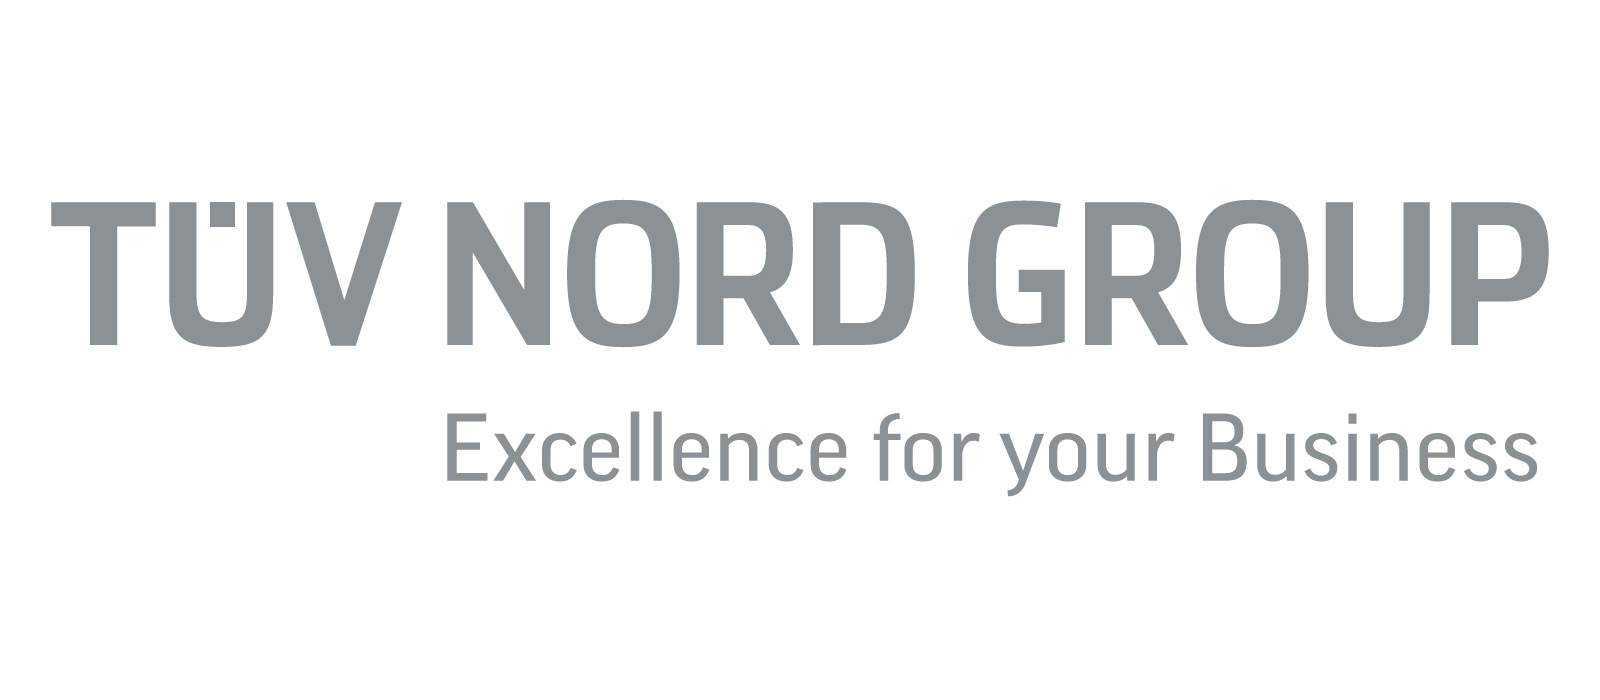 neue dachmarke f r t v nord group corporate identity portal. Black Bedroom Furniture Sets. Home Design Ideas